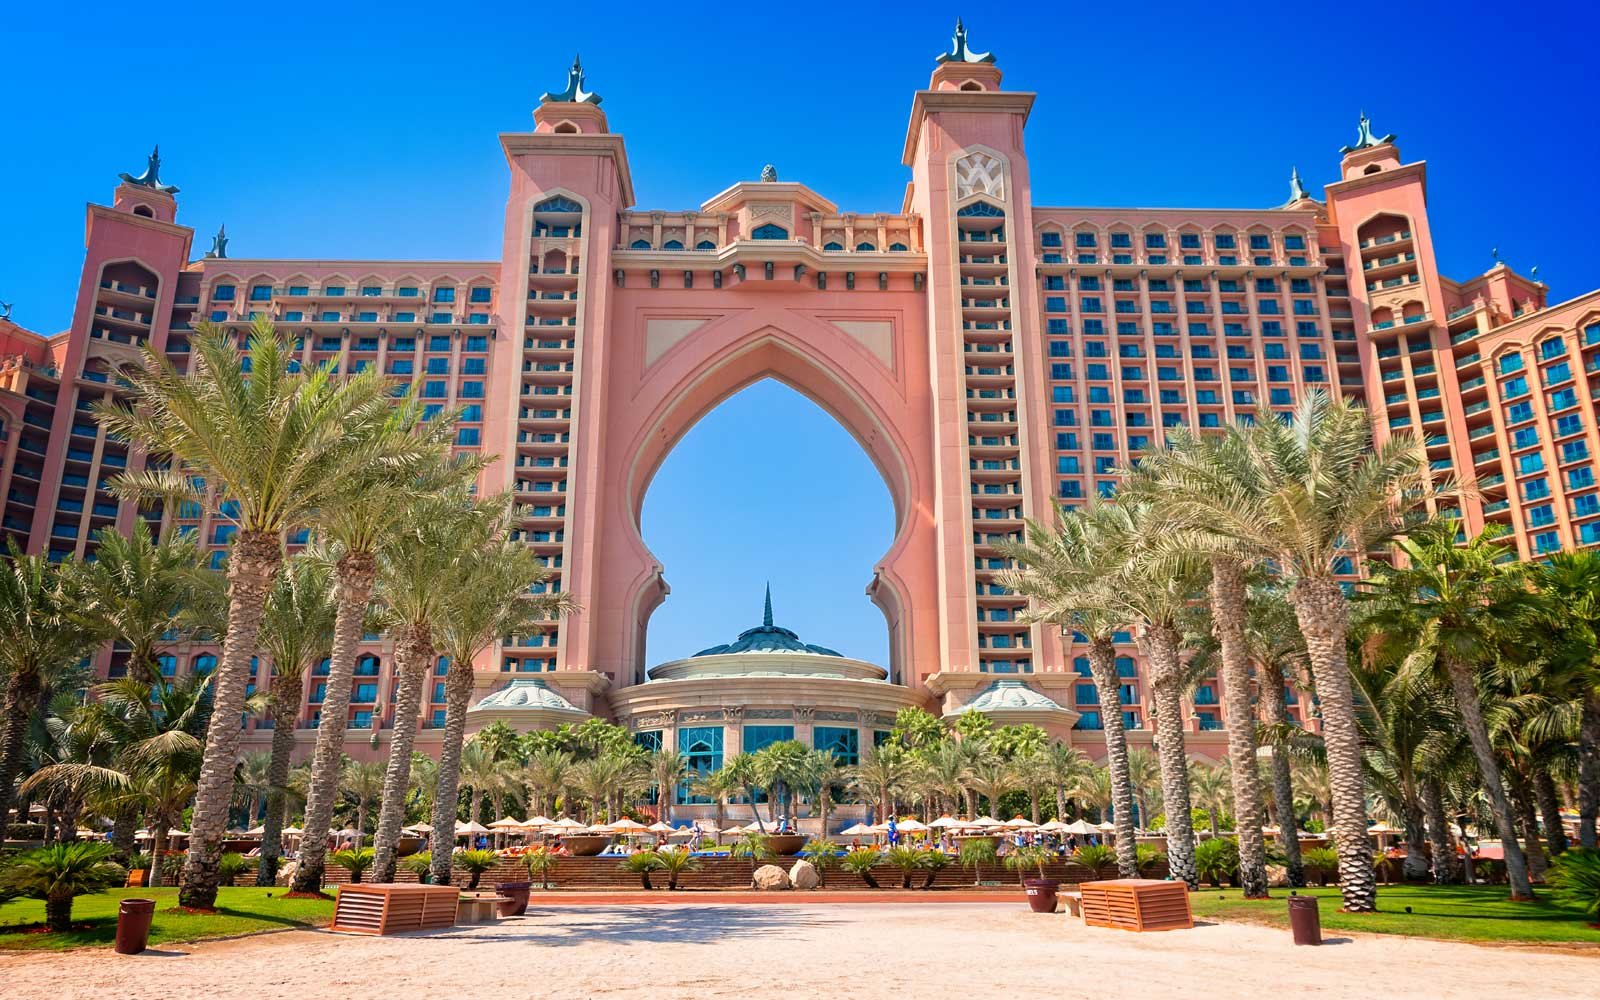 The facade of the Atlantis The Palm Dubai hotel